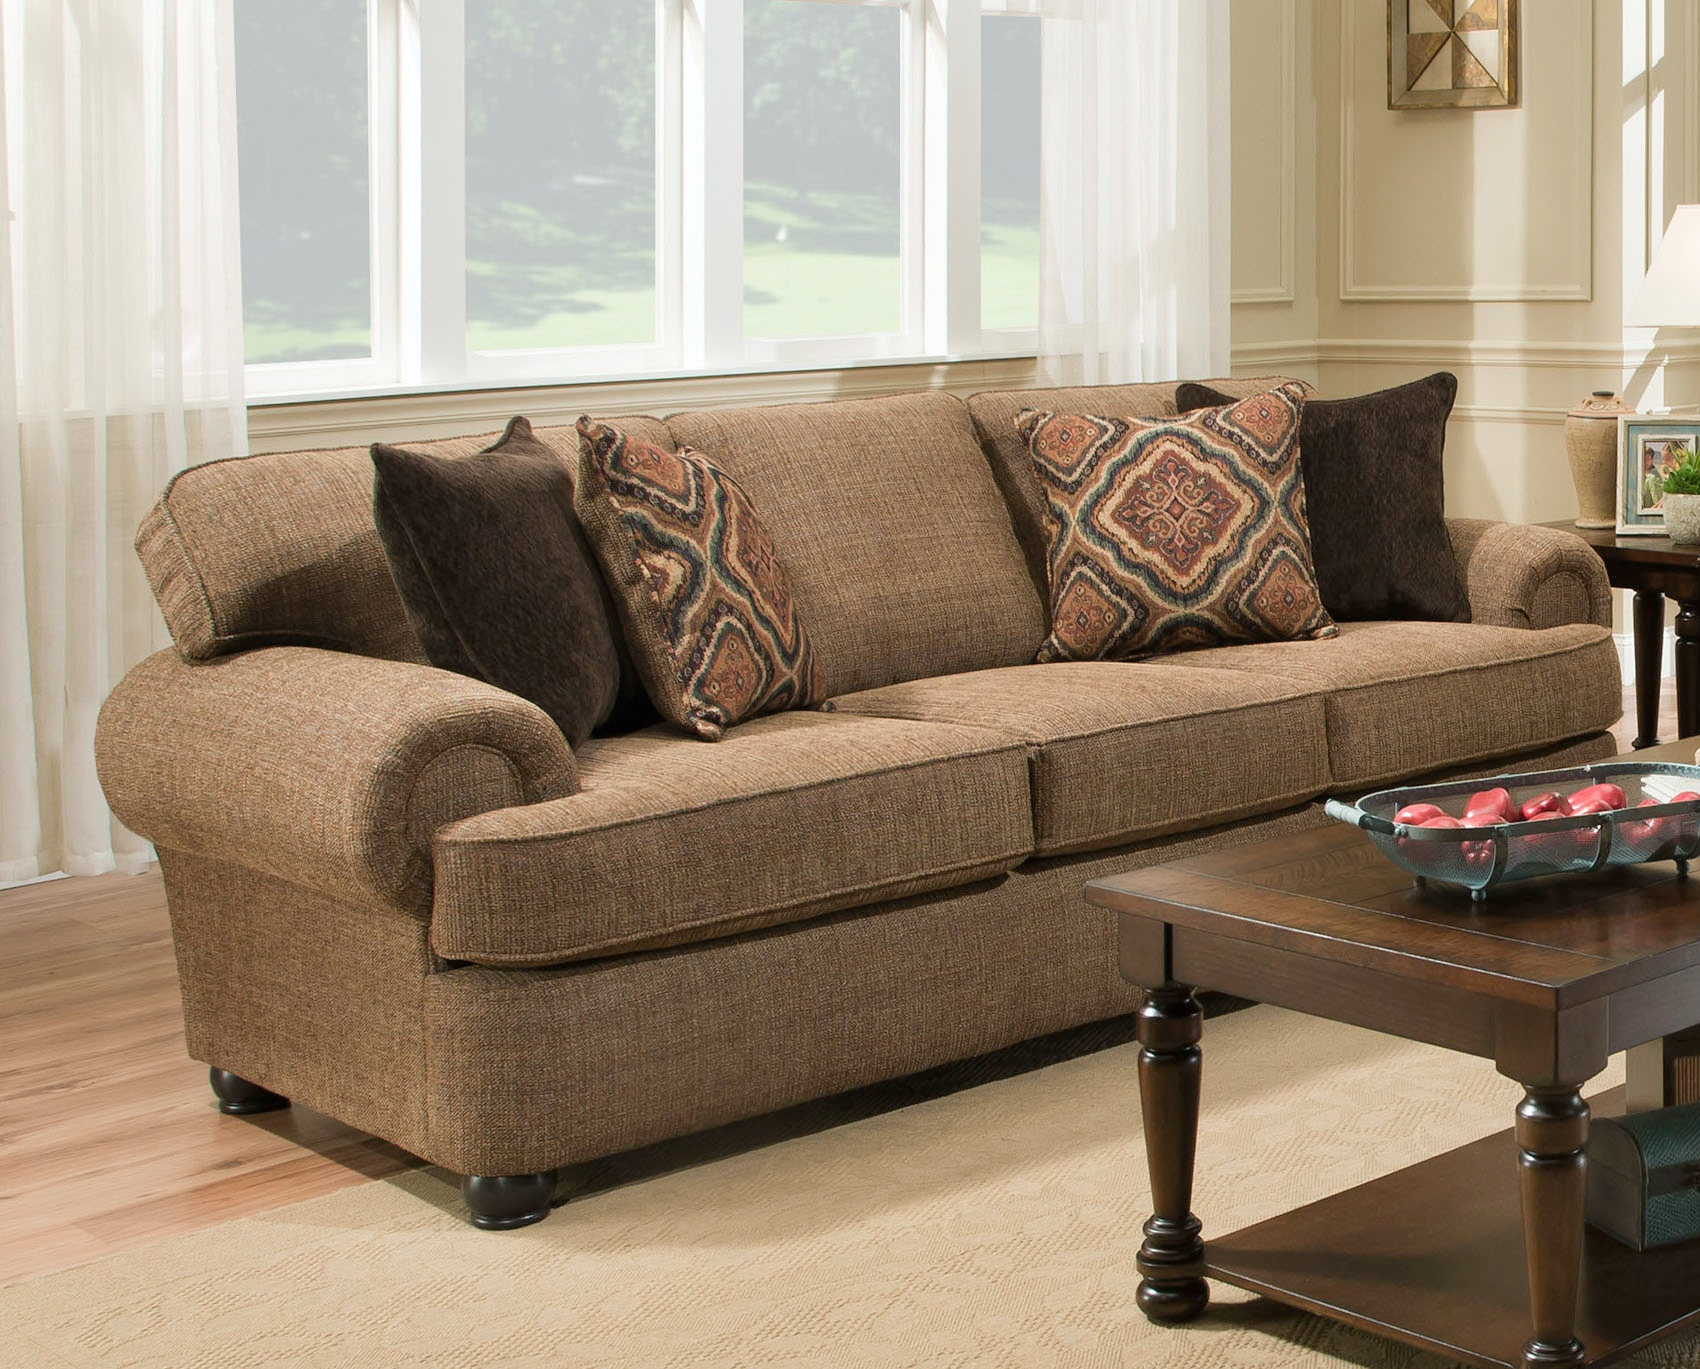 Sofa simmons red barrel studio simmons upholstery stirling for Tapestry sofa living room furniture